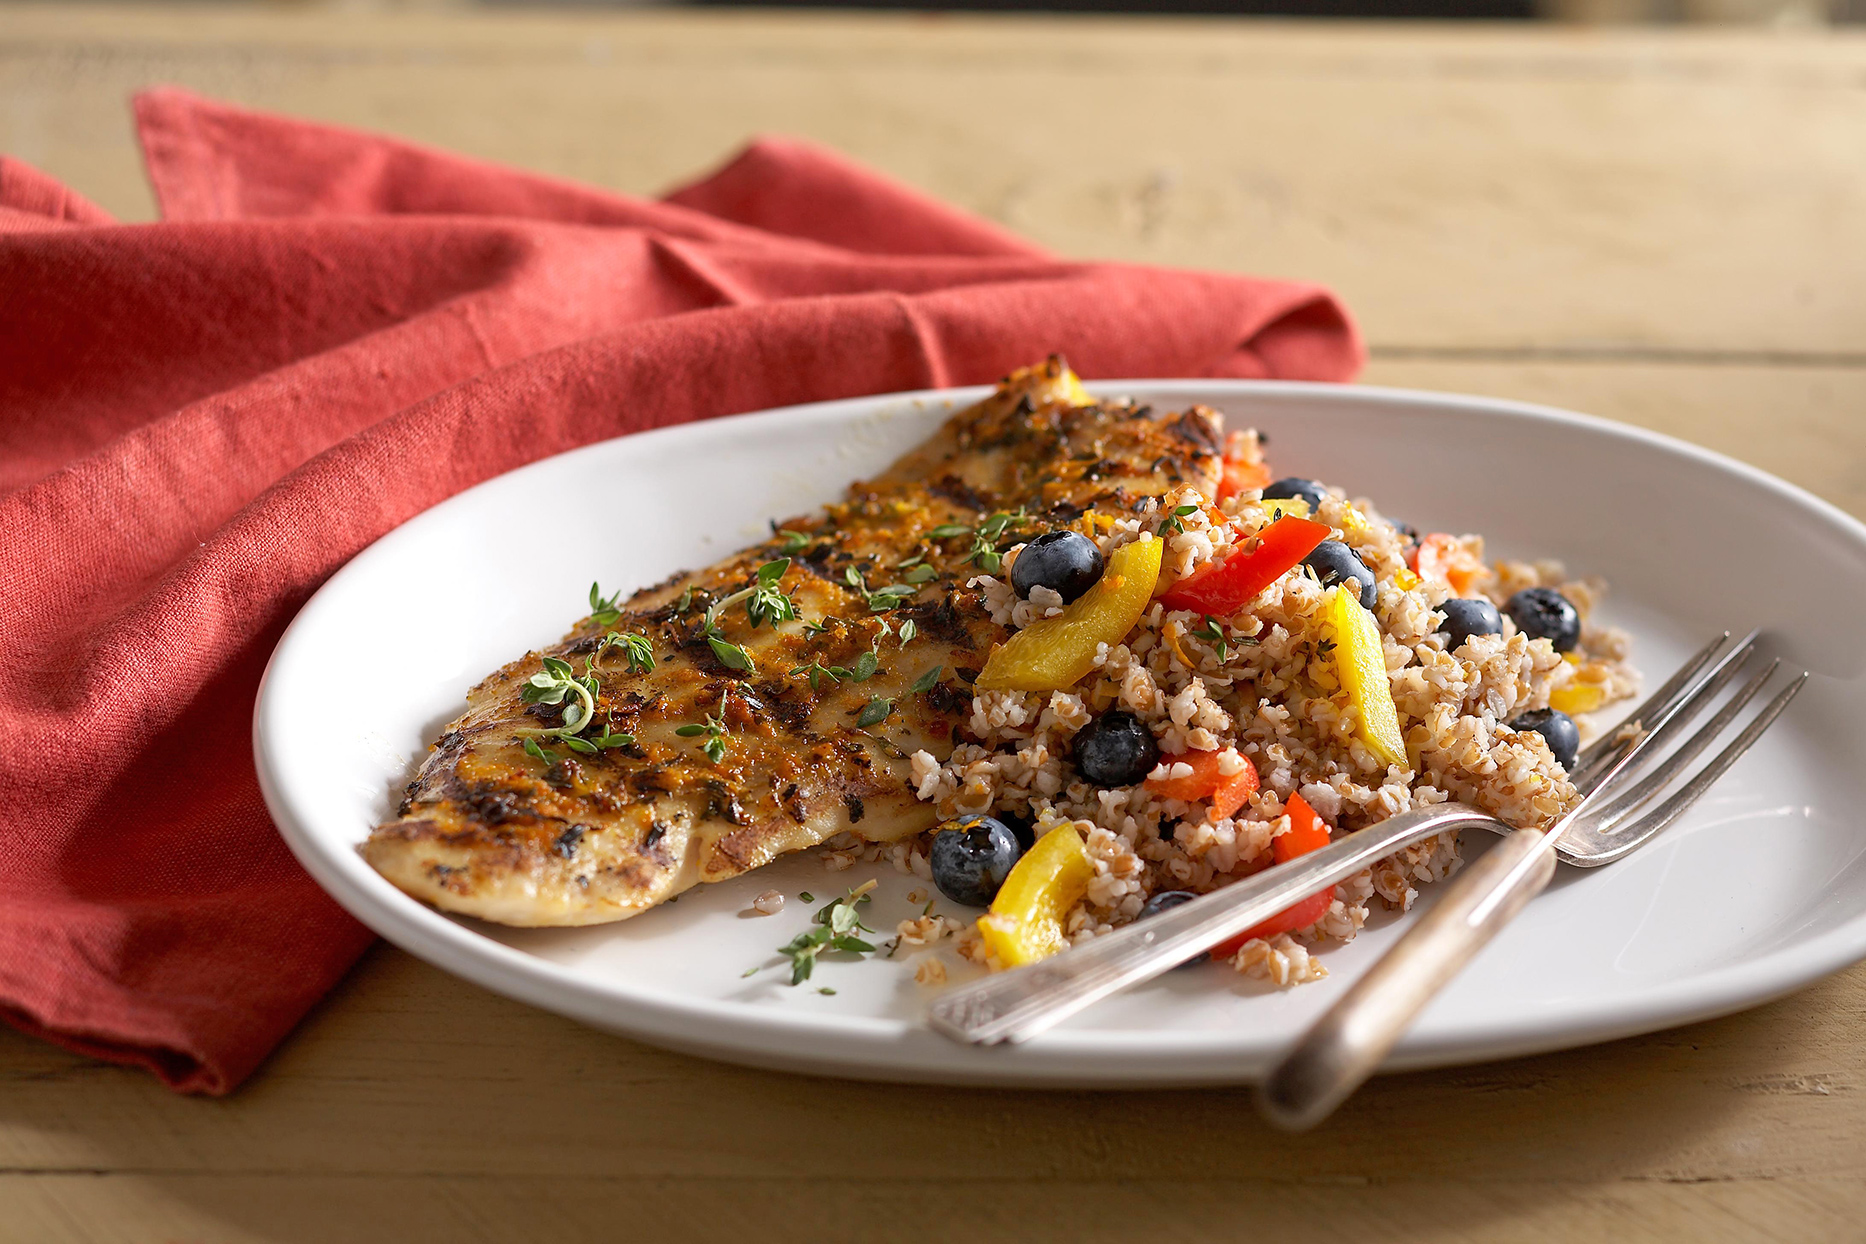 Spice-Rubbed Grouper with Berry Salad